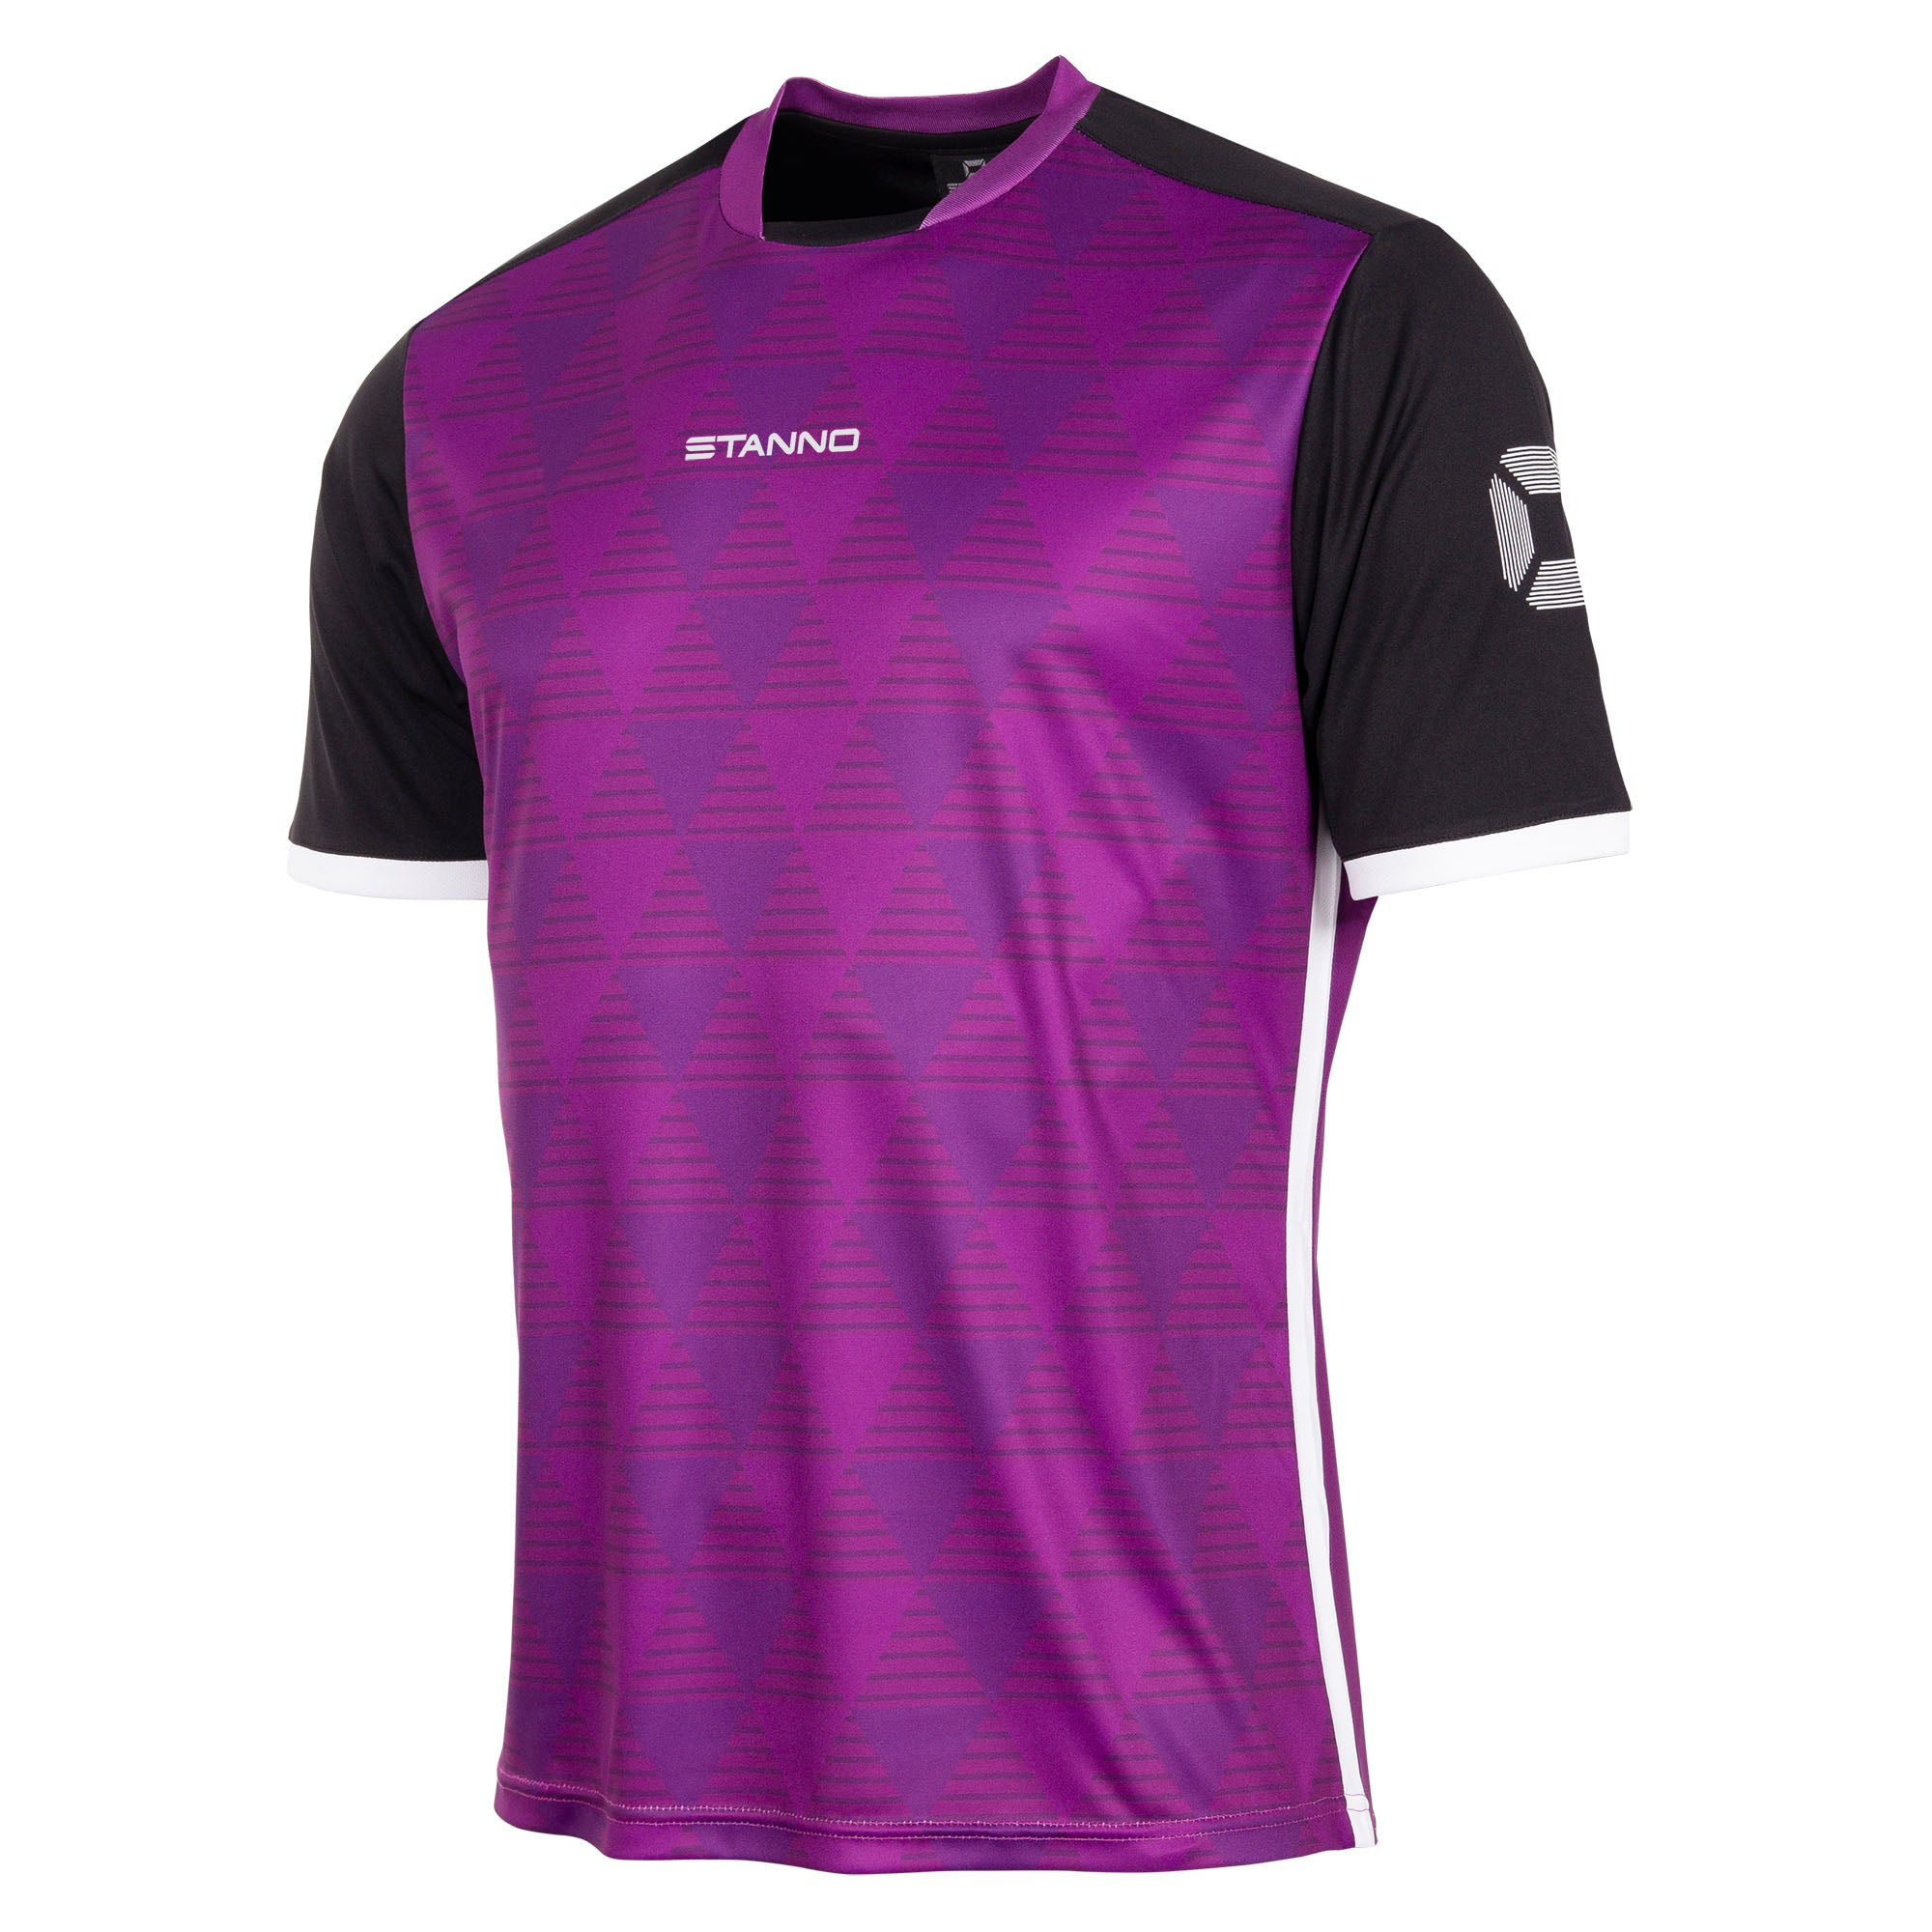 Stanno Pulse limited edition short sleeved shirt in purple with subtle triangle graphic on the chest, black sleeves with white cuffs and side panel.